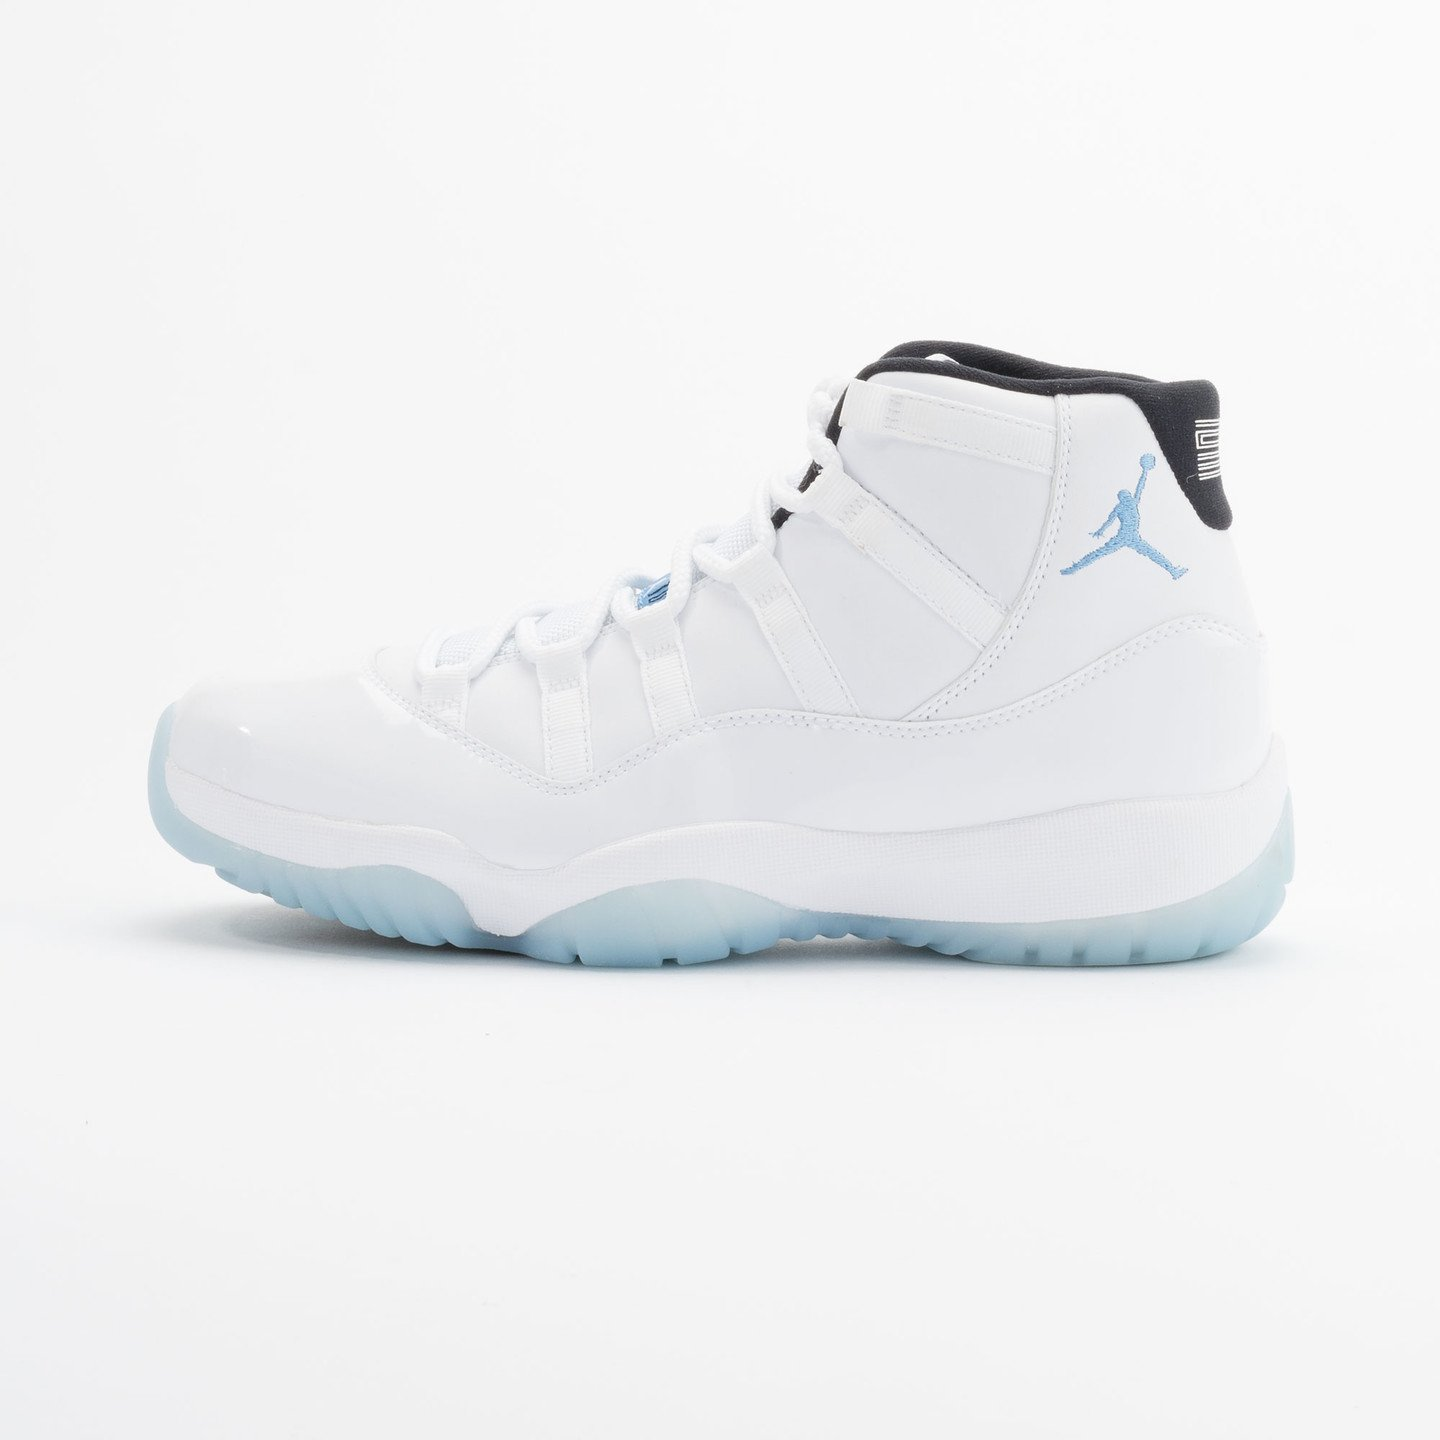 Jordan Air Jordan 11 Retro White/Legend Blue-Black 378037-117-45